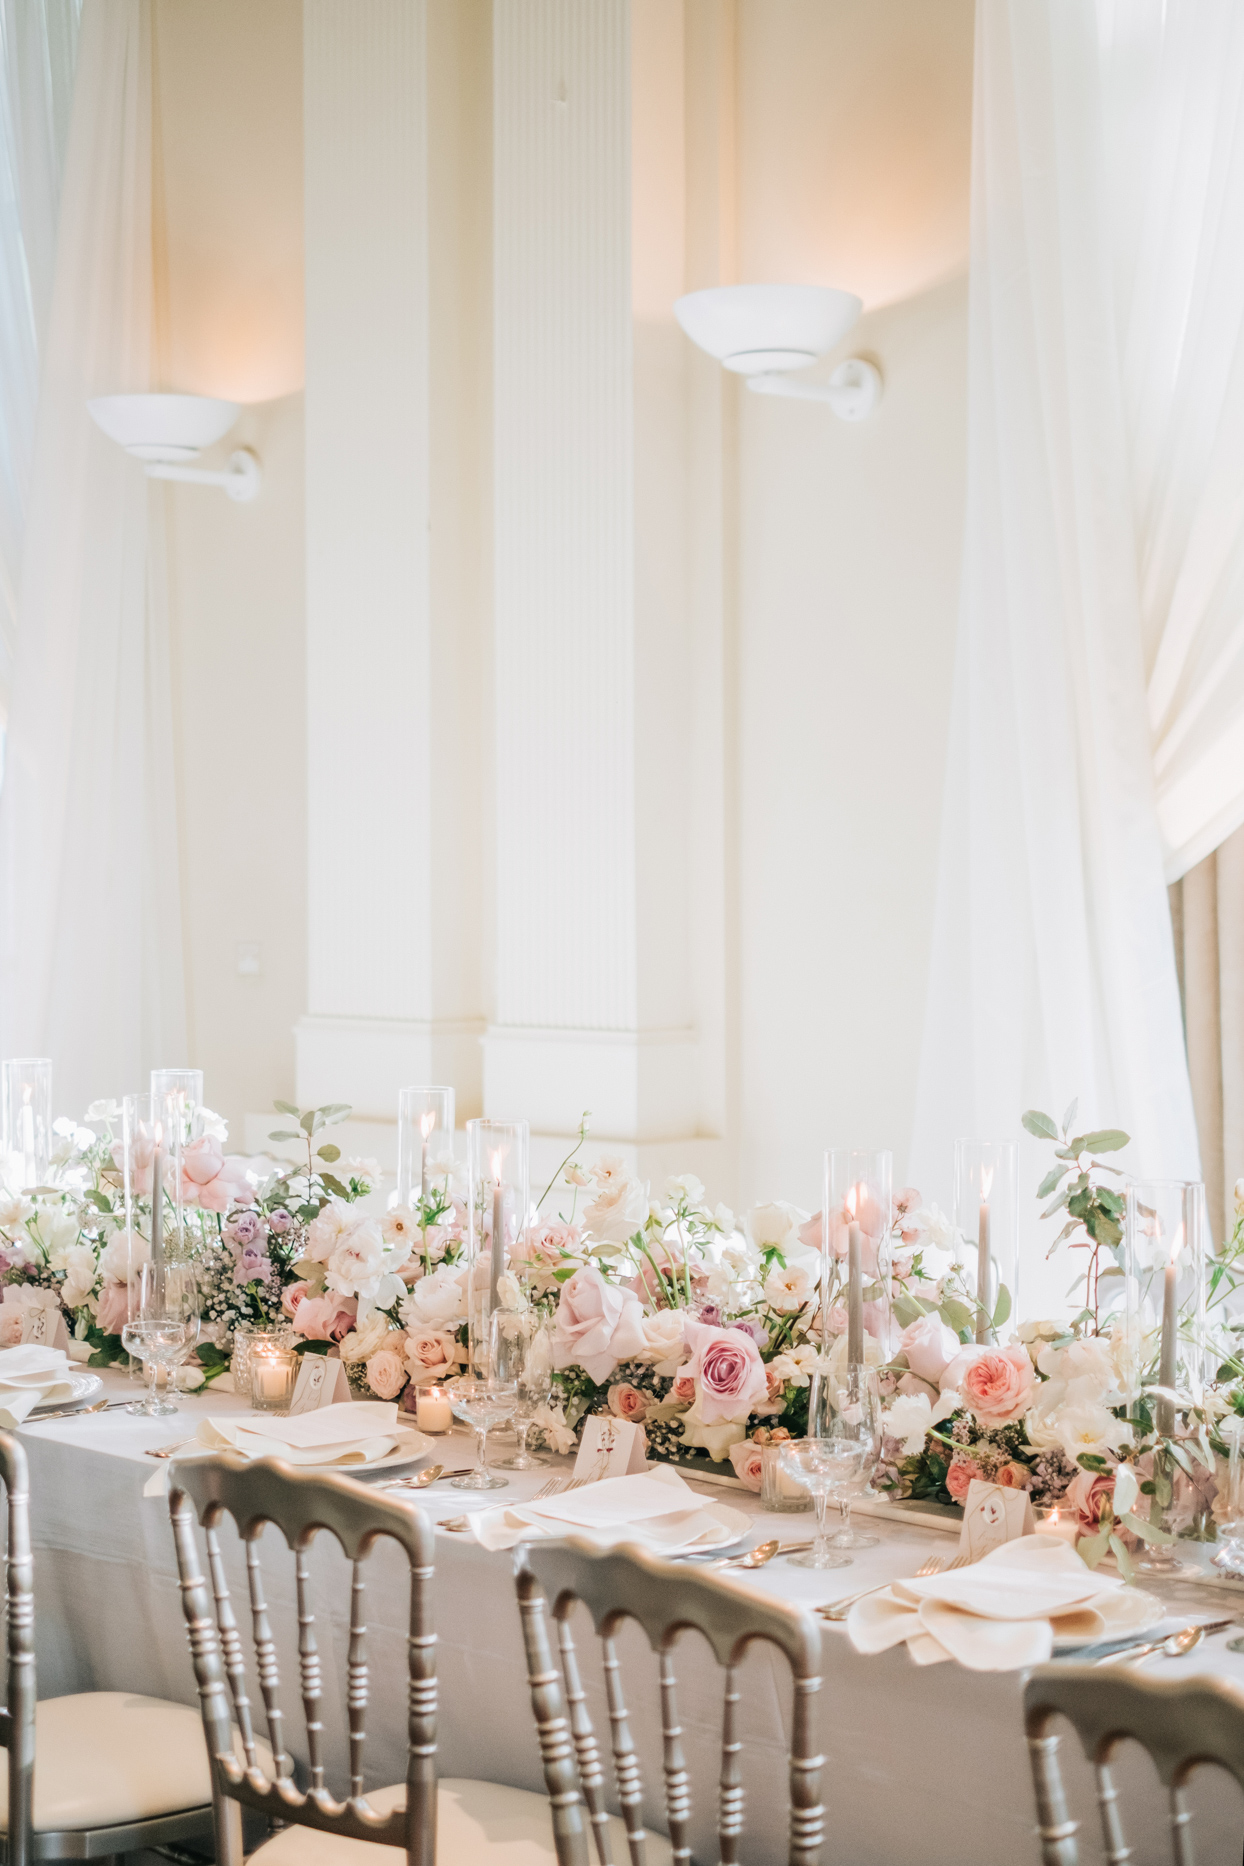 wedding reception centerpieces featuring blush and cream florals and taper candles in glass hurricanes